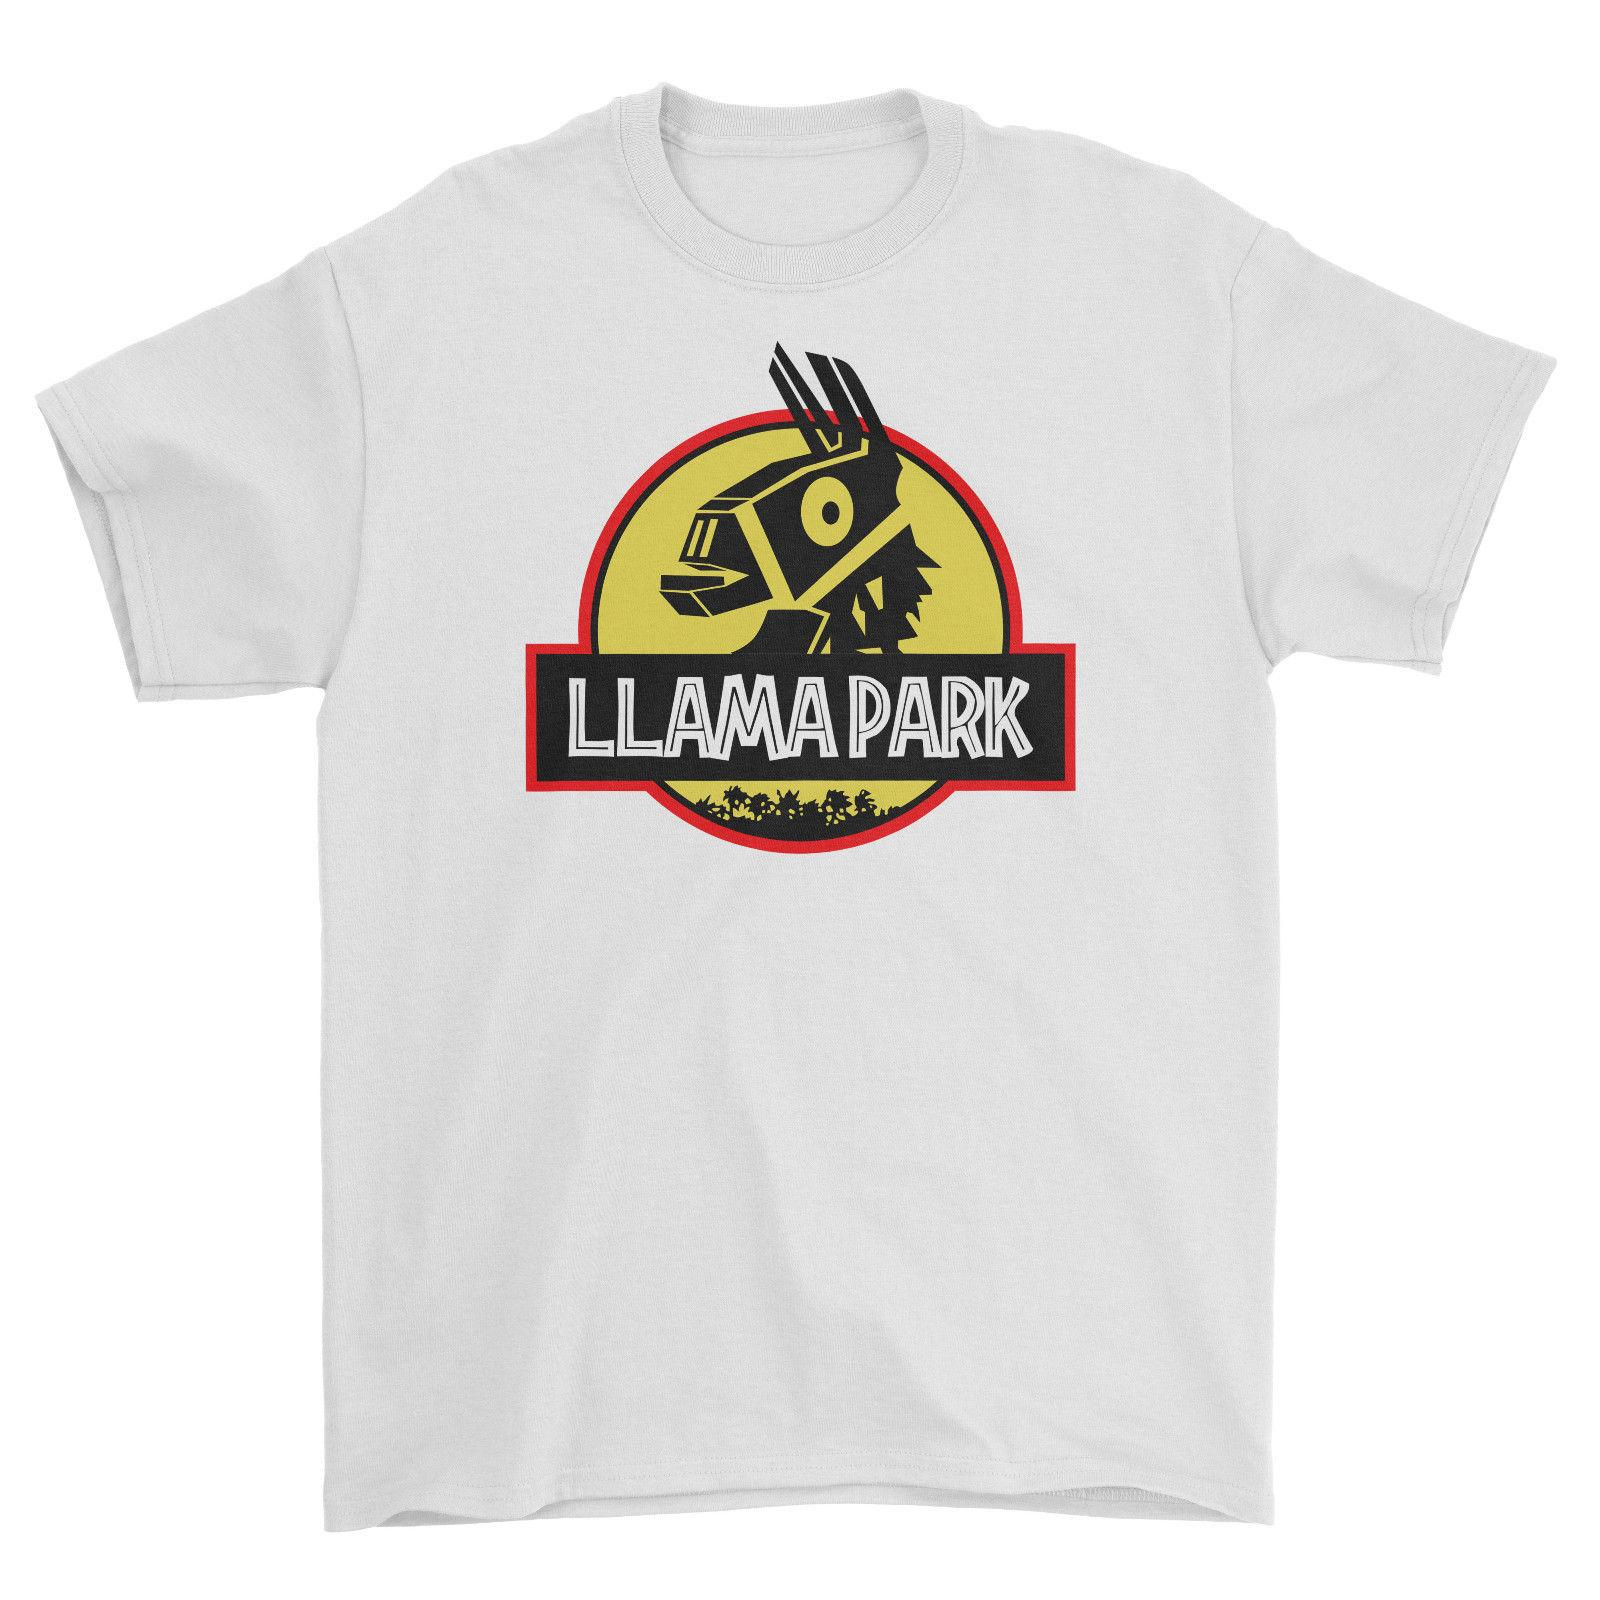 f476cd95e98 Fortnite Llama Park T Shirt Cool Retro Funny Gamer Sway Xbox Ps4 Kids  Newest Top Tees Fashion Style Men 100% Cotton Classic Tee Novelty Tee Shirts  Awesome ...